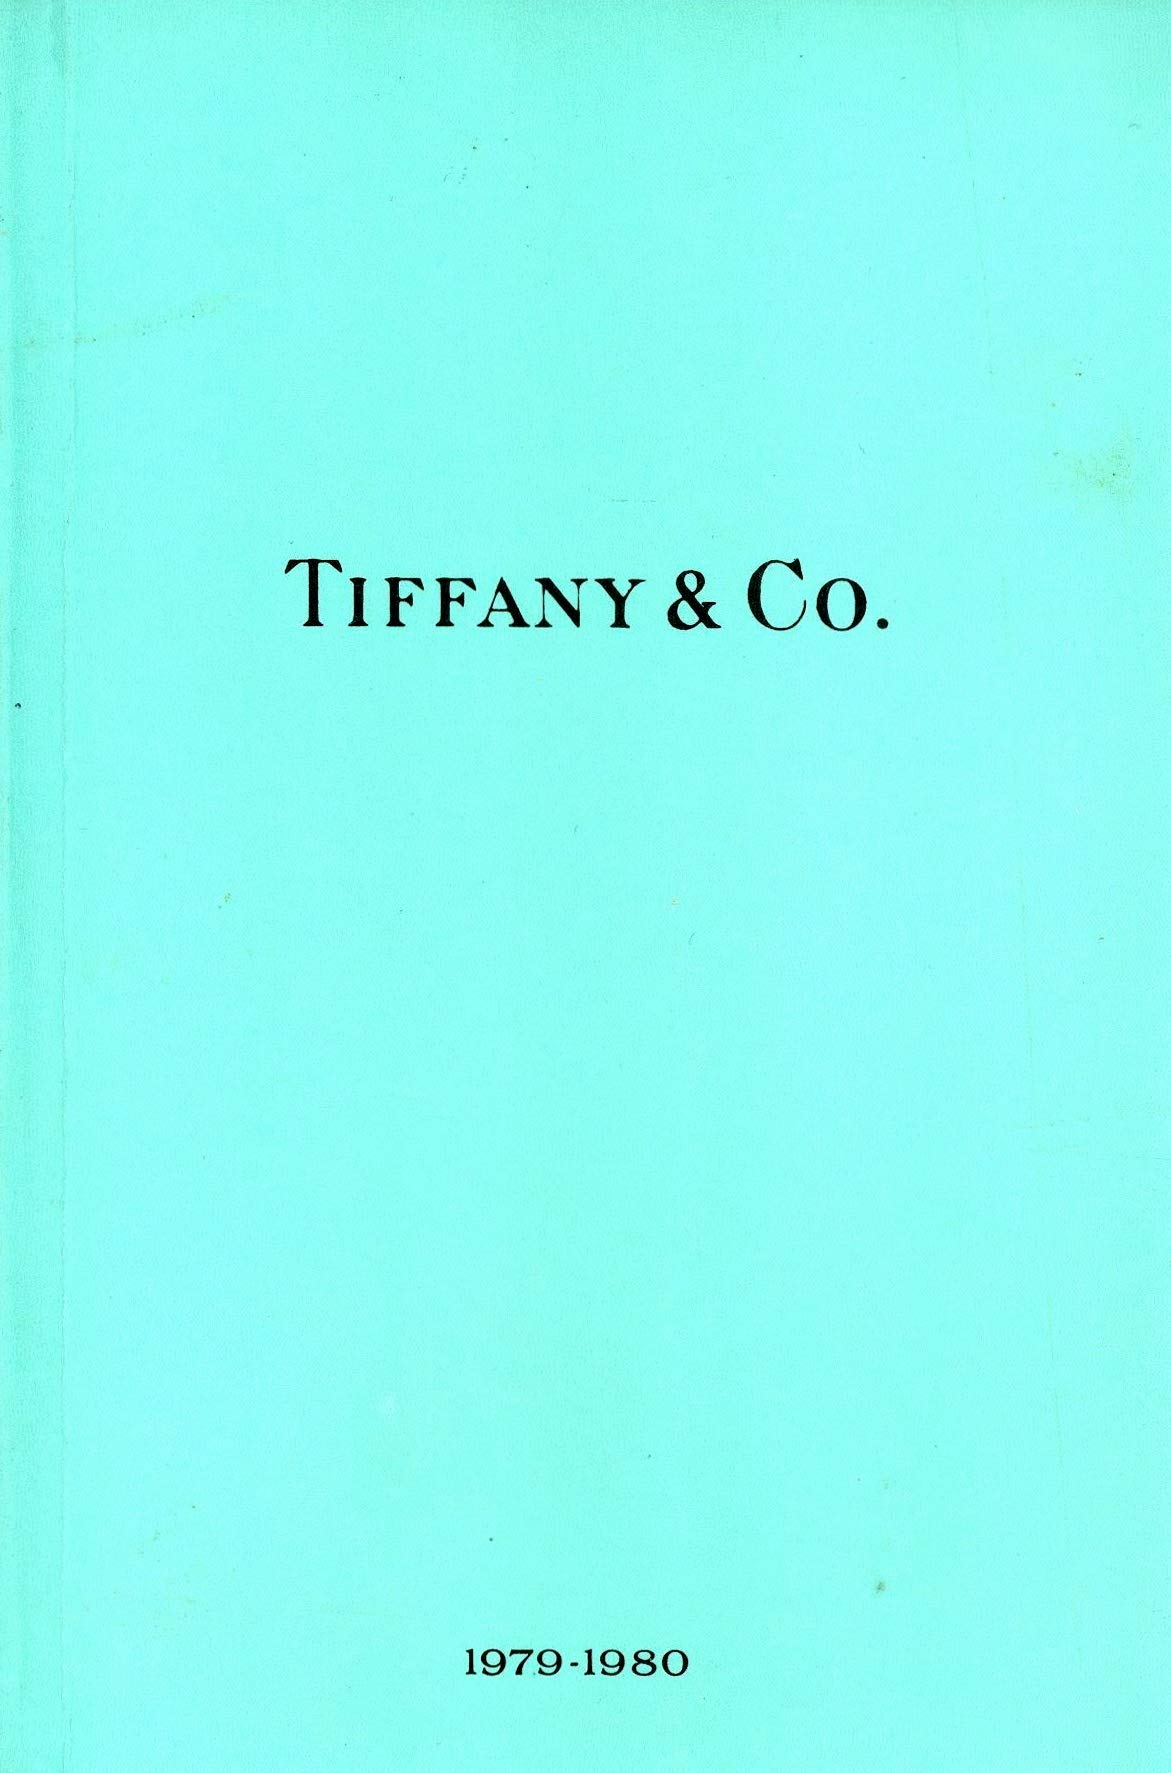 Tiffany Co 1979 1980 The Tiffany Co Blue Book Tiffany Designers Books